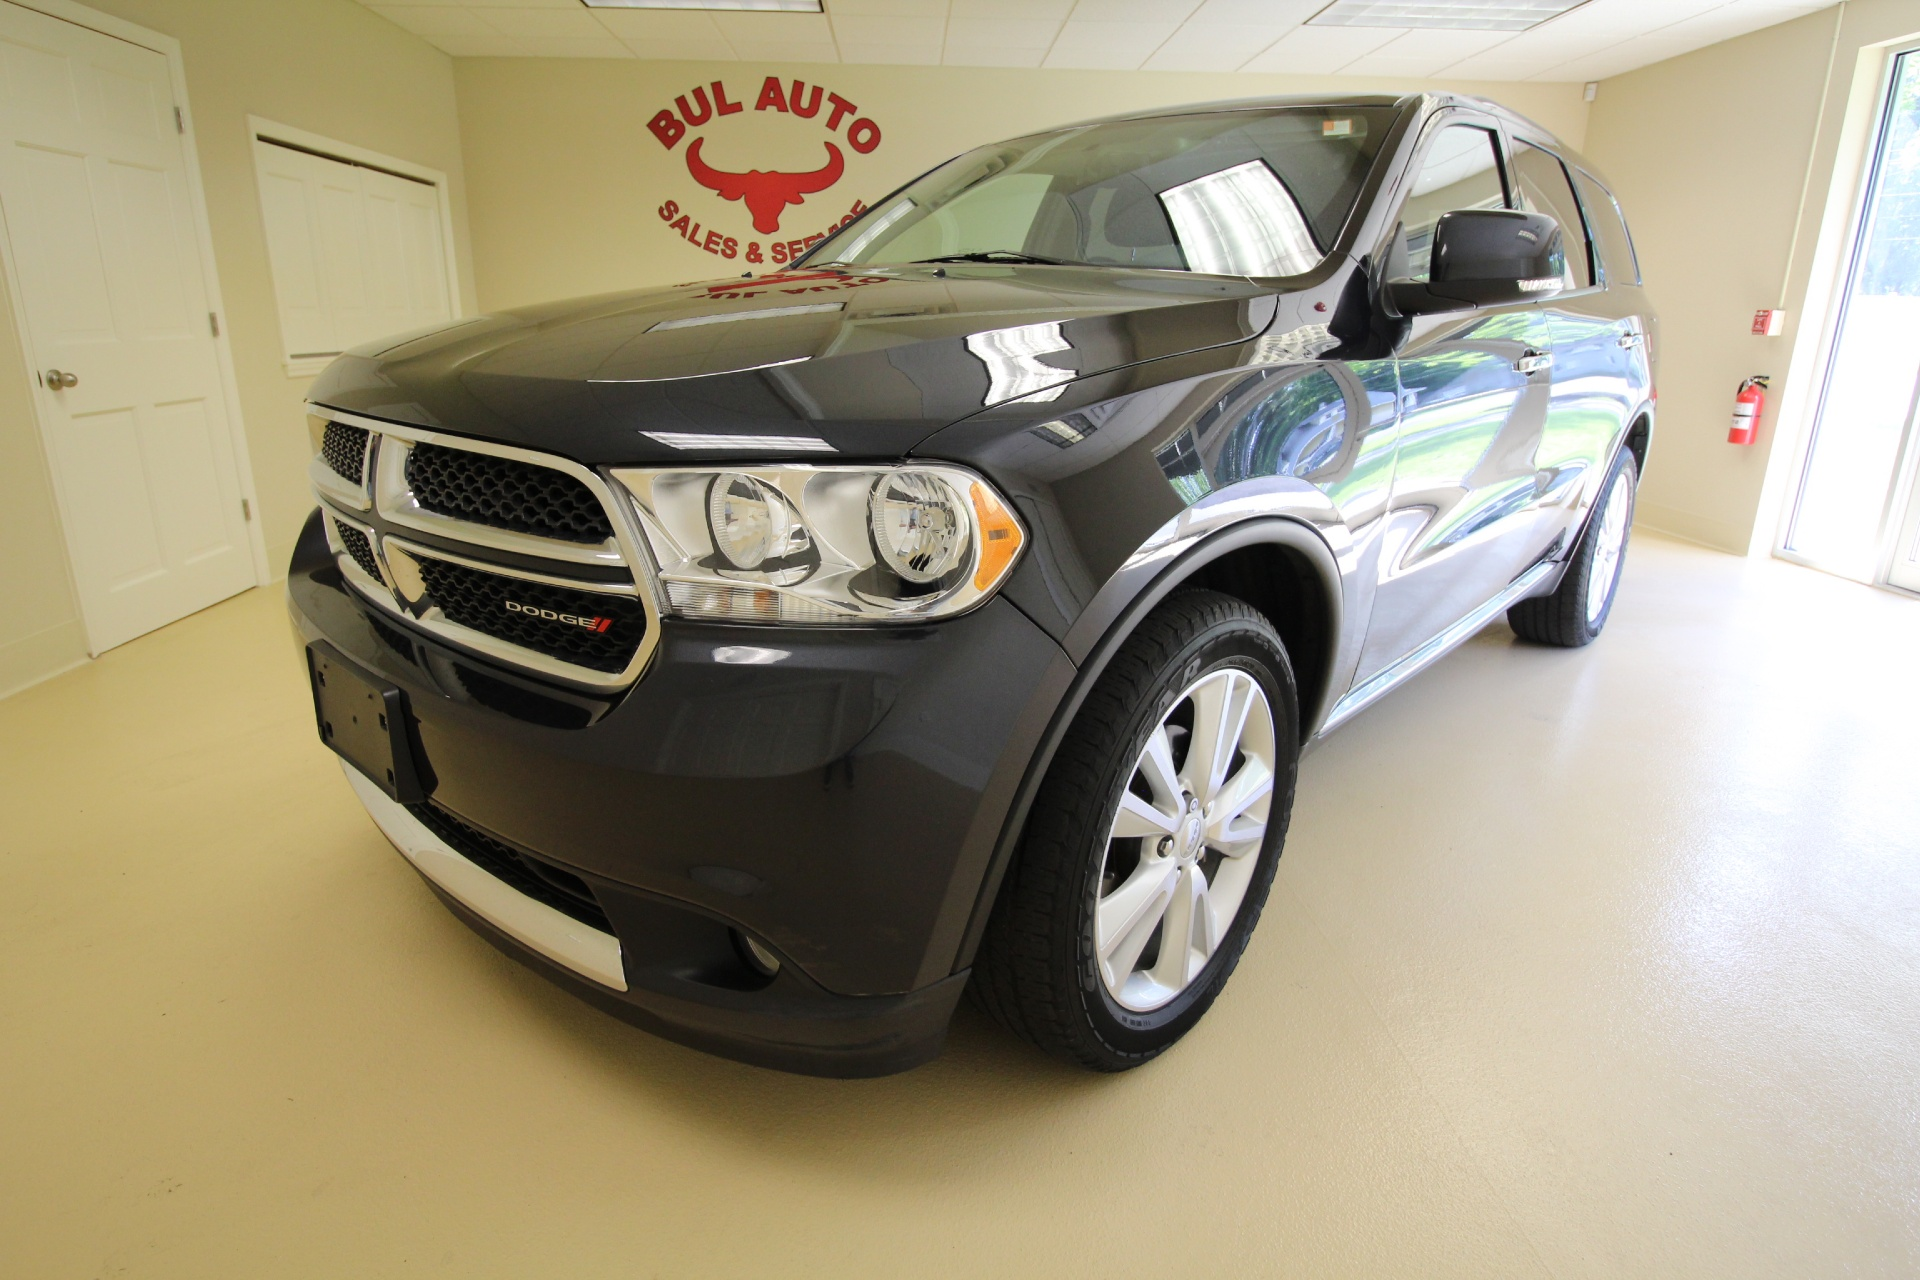 2013 dodge durango crew 4wd loaded with options navigation. Black Bedroom Furniture Sets. Home Design Ideas